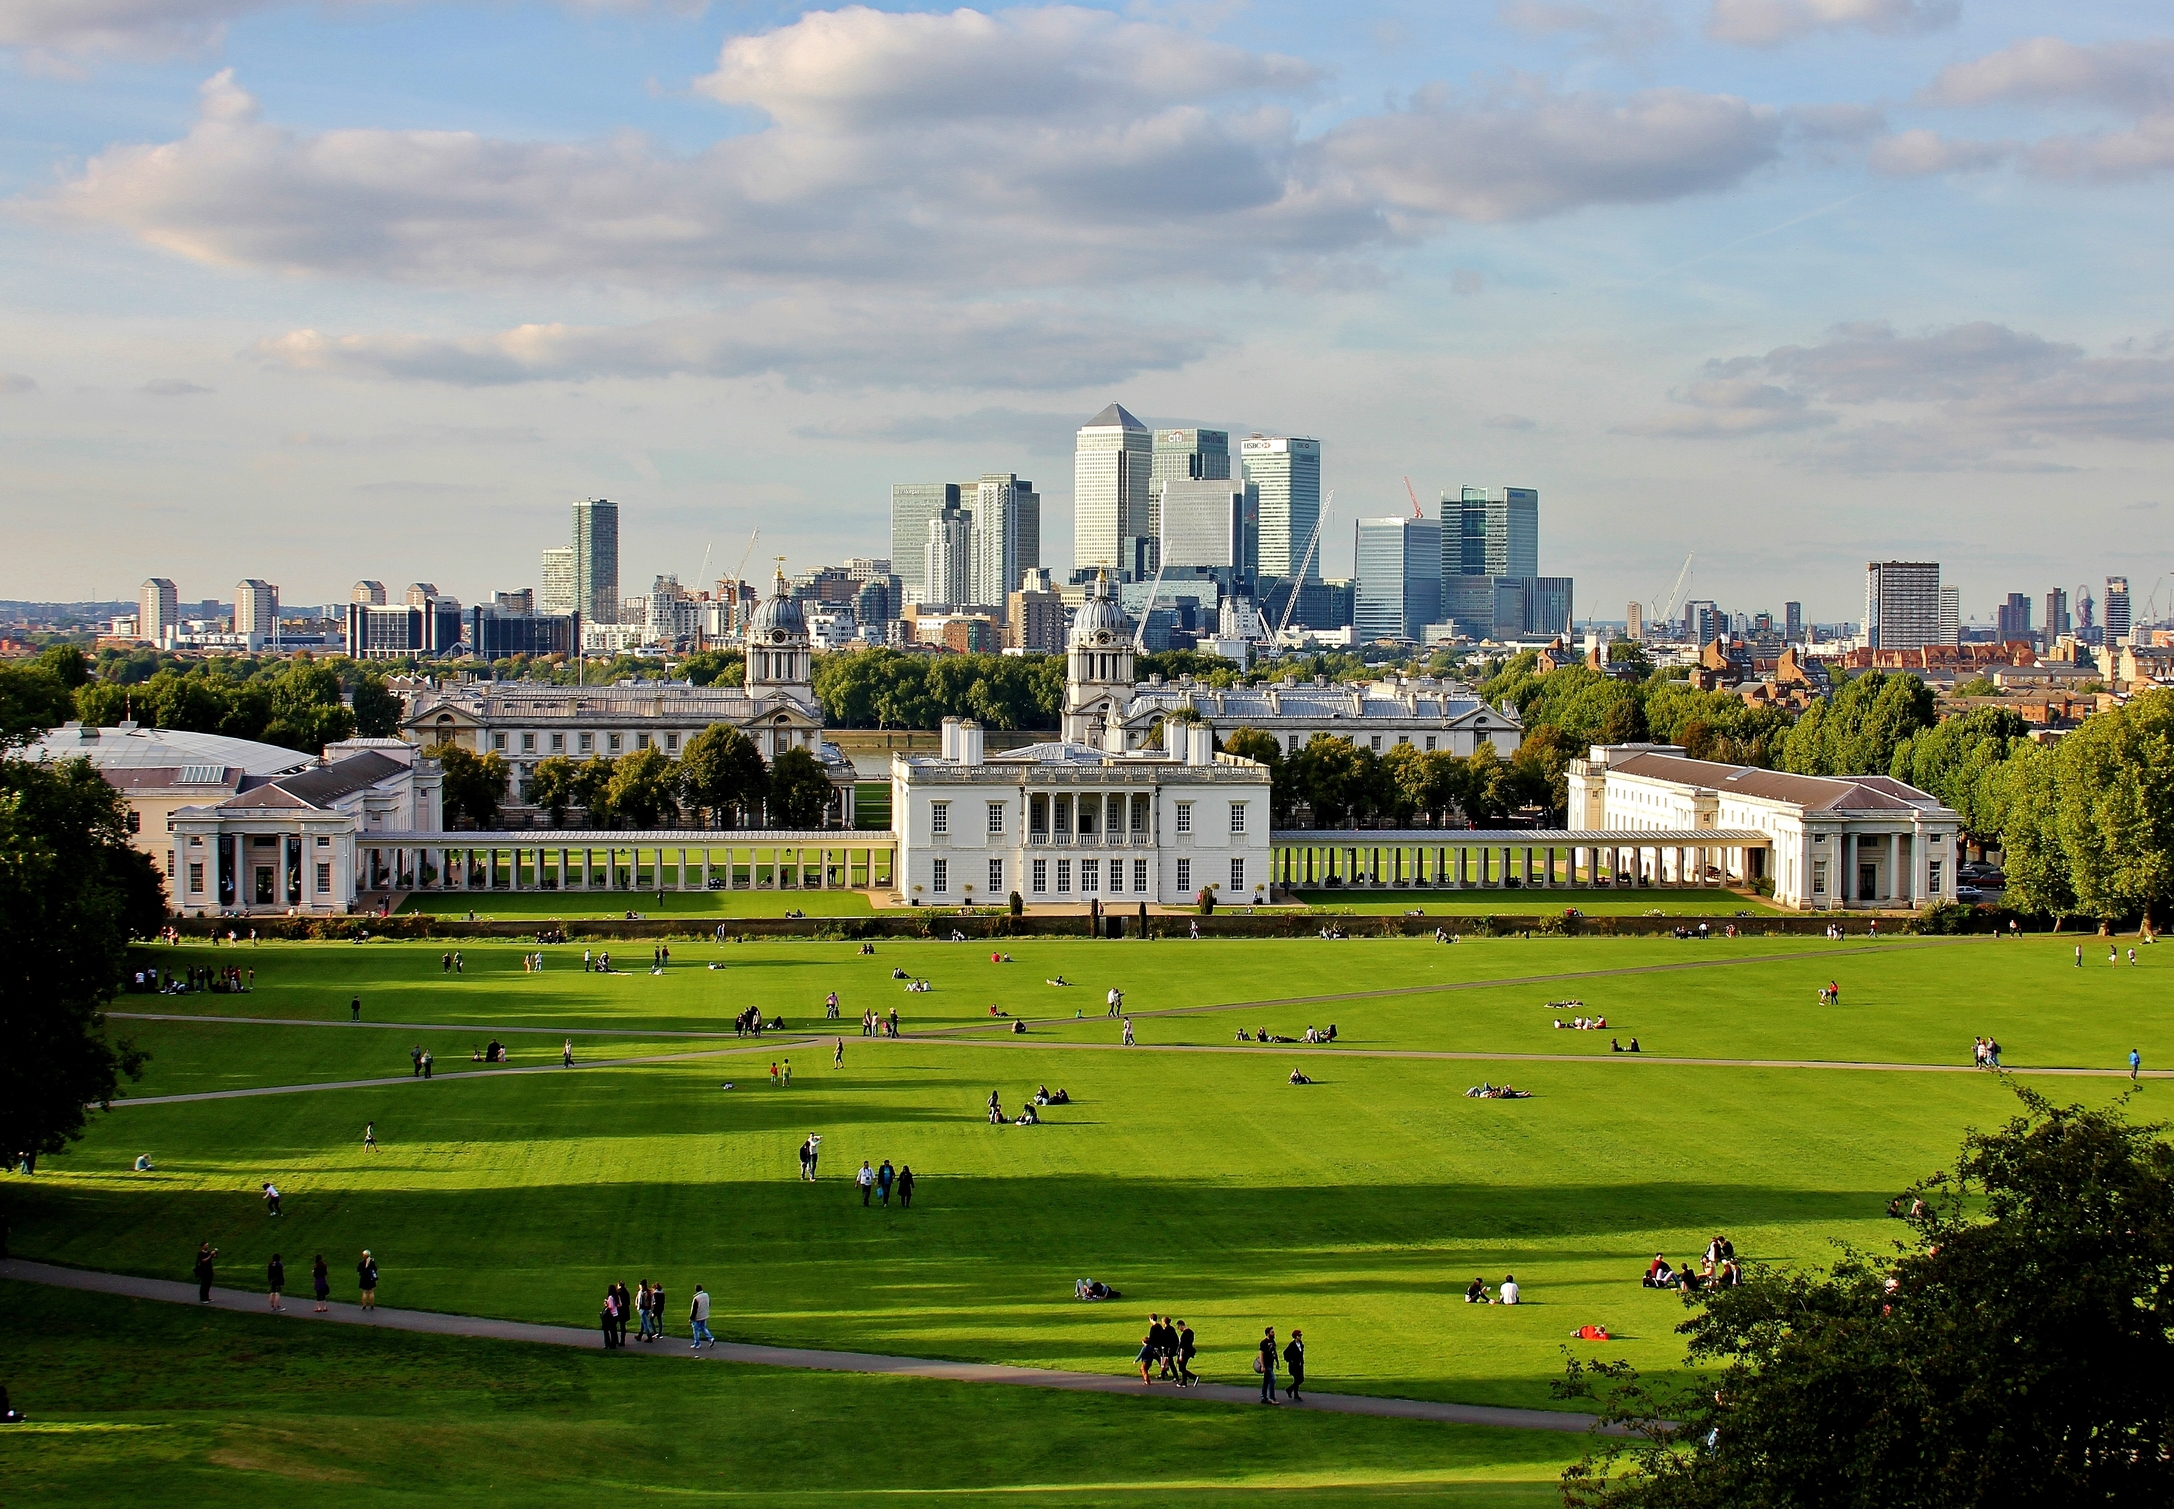 Panoramic_view_of_london_greenwich